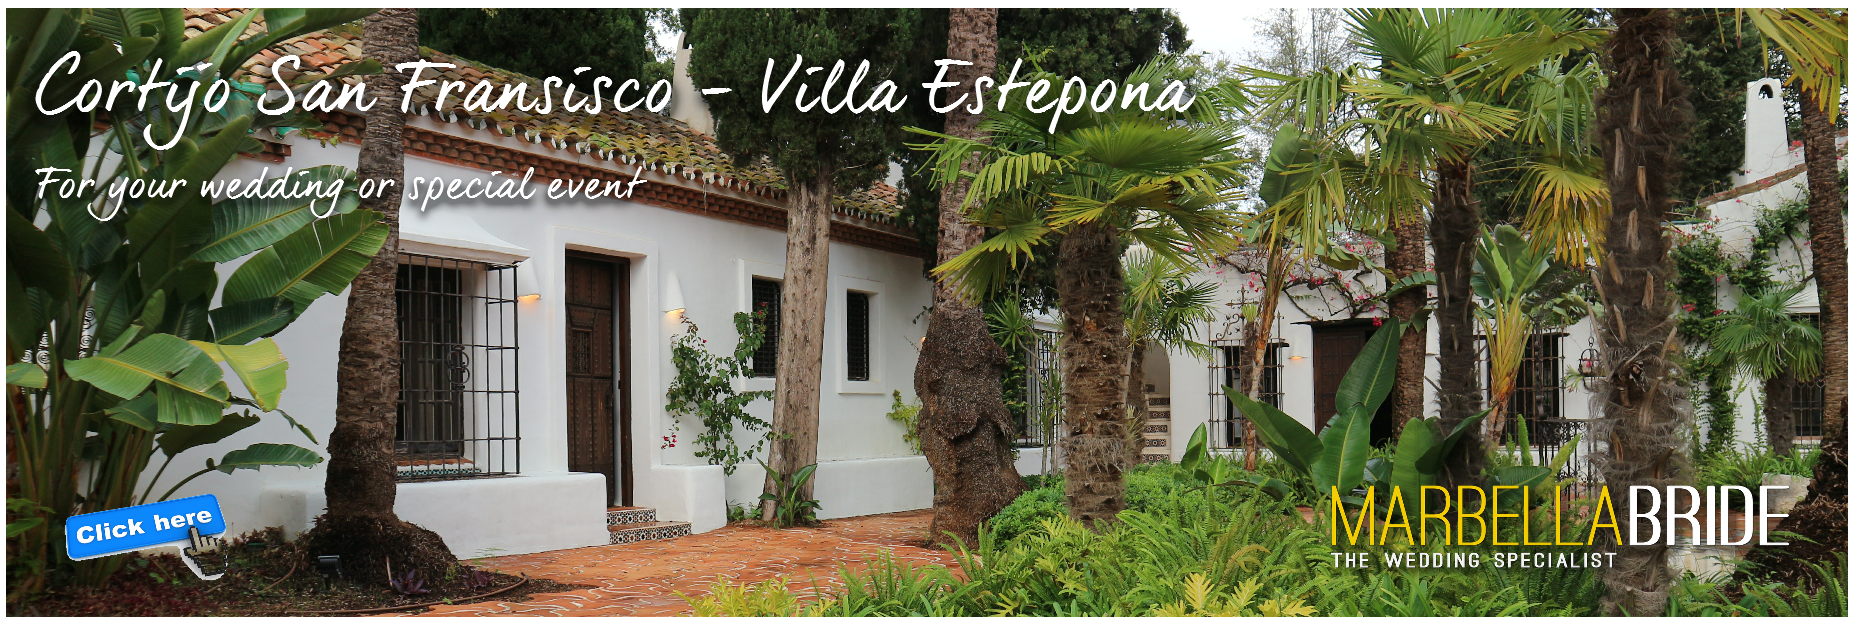 Marbella Villa wedding venue